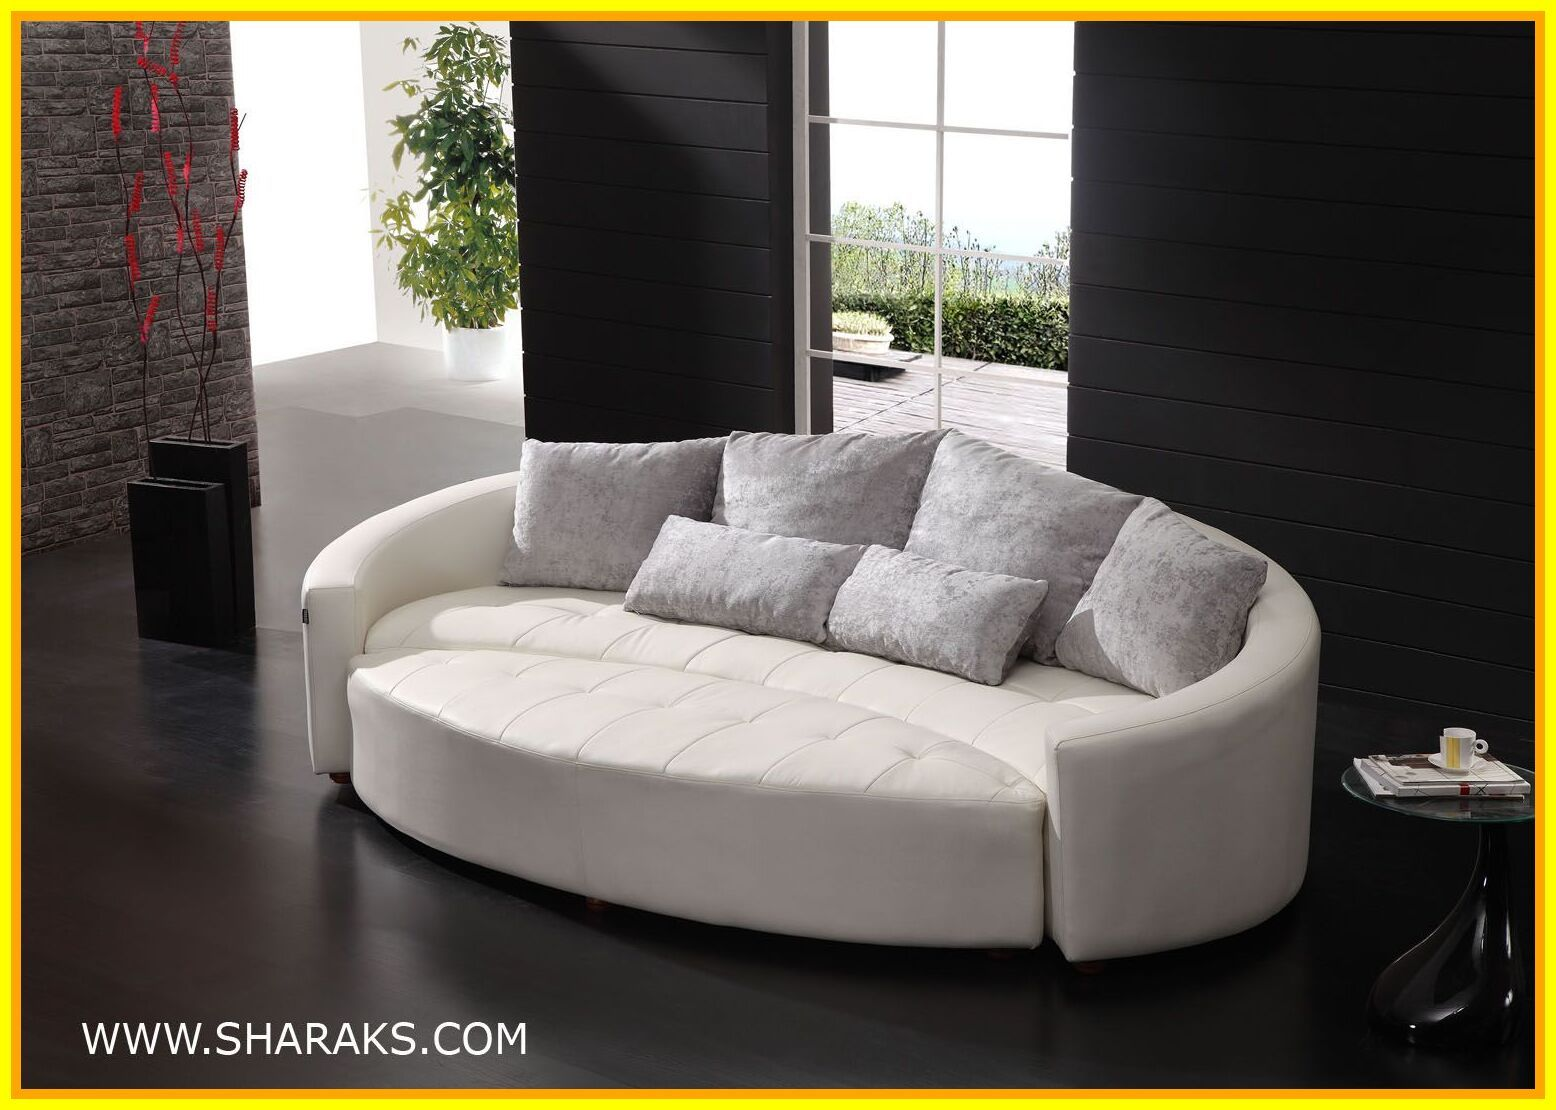 50 Reference Of Small Curved Sofa With Ottoman In 2020 Round Couch Round Sofa Small Curved Sofa